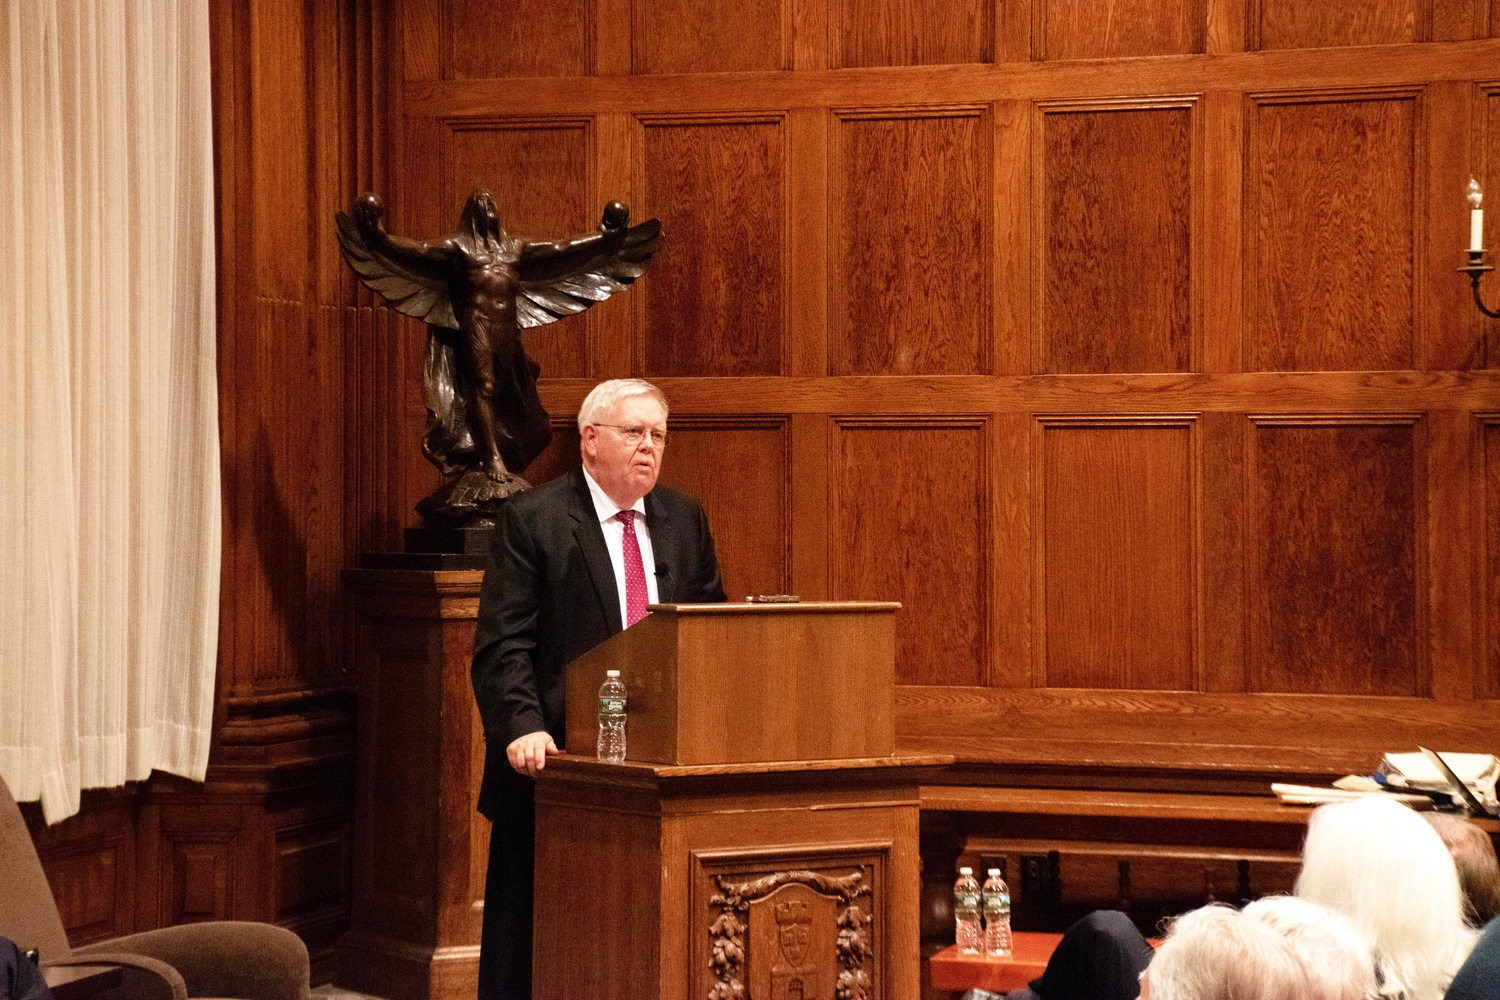 Former United States Ambassador to Ukraine John F. Tefft spoke about the United States's relationship with Ukrainian at an event in the Barker Center Monday evening.